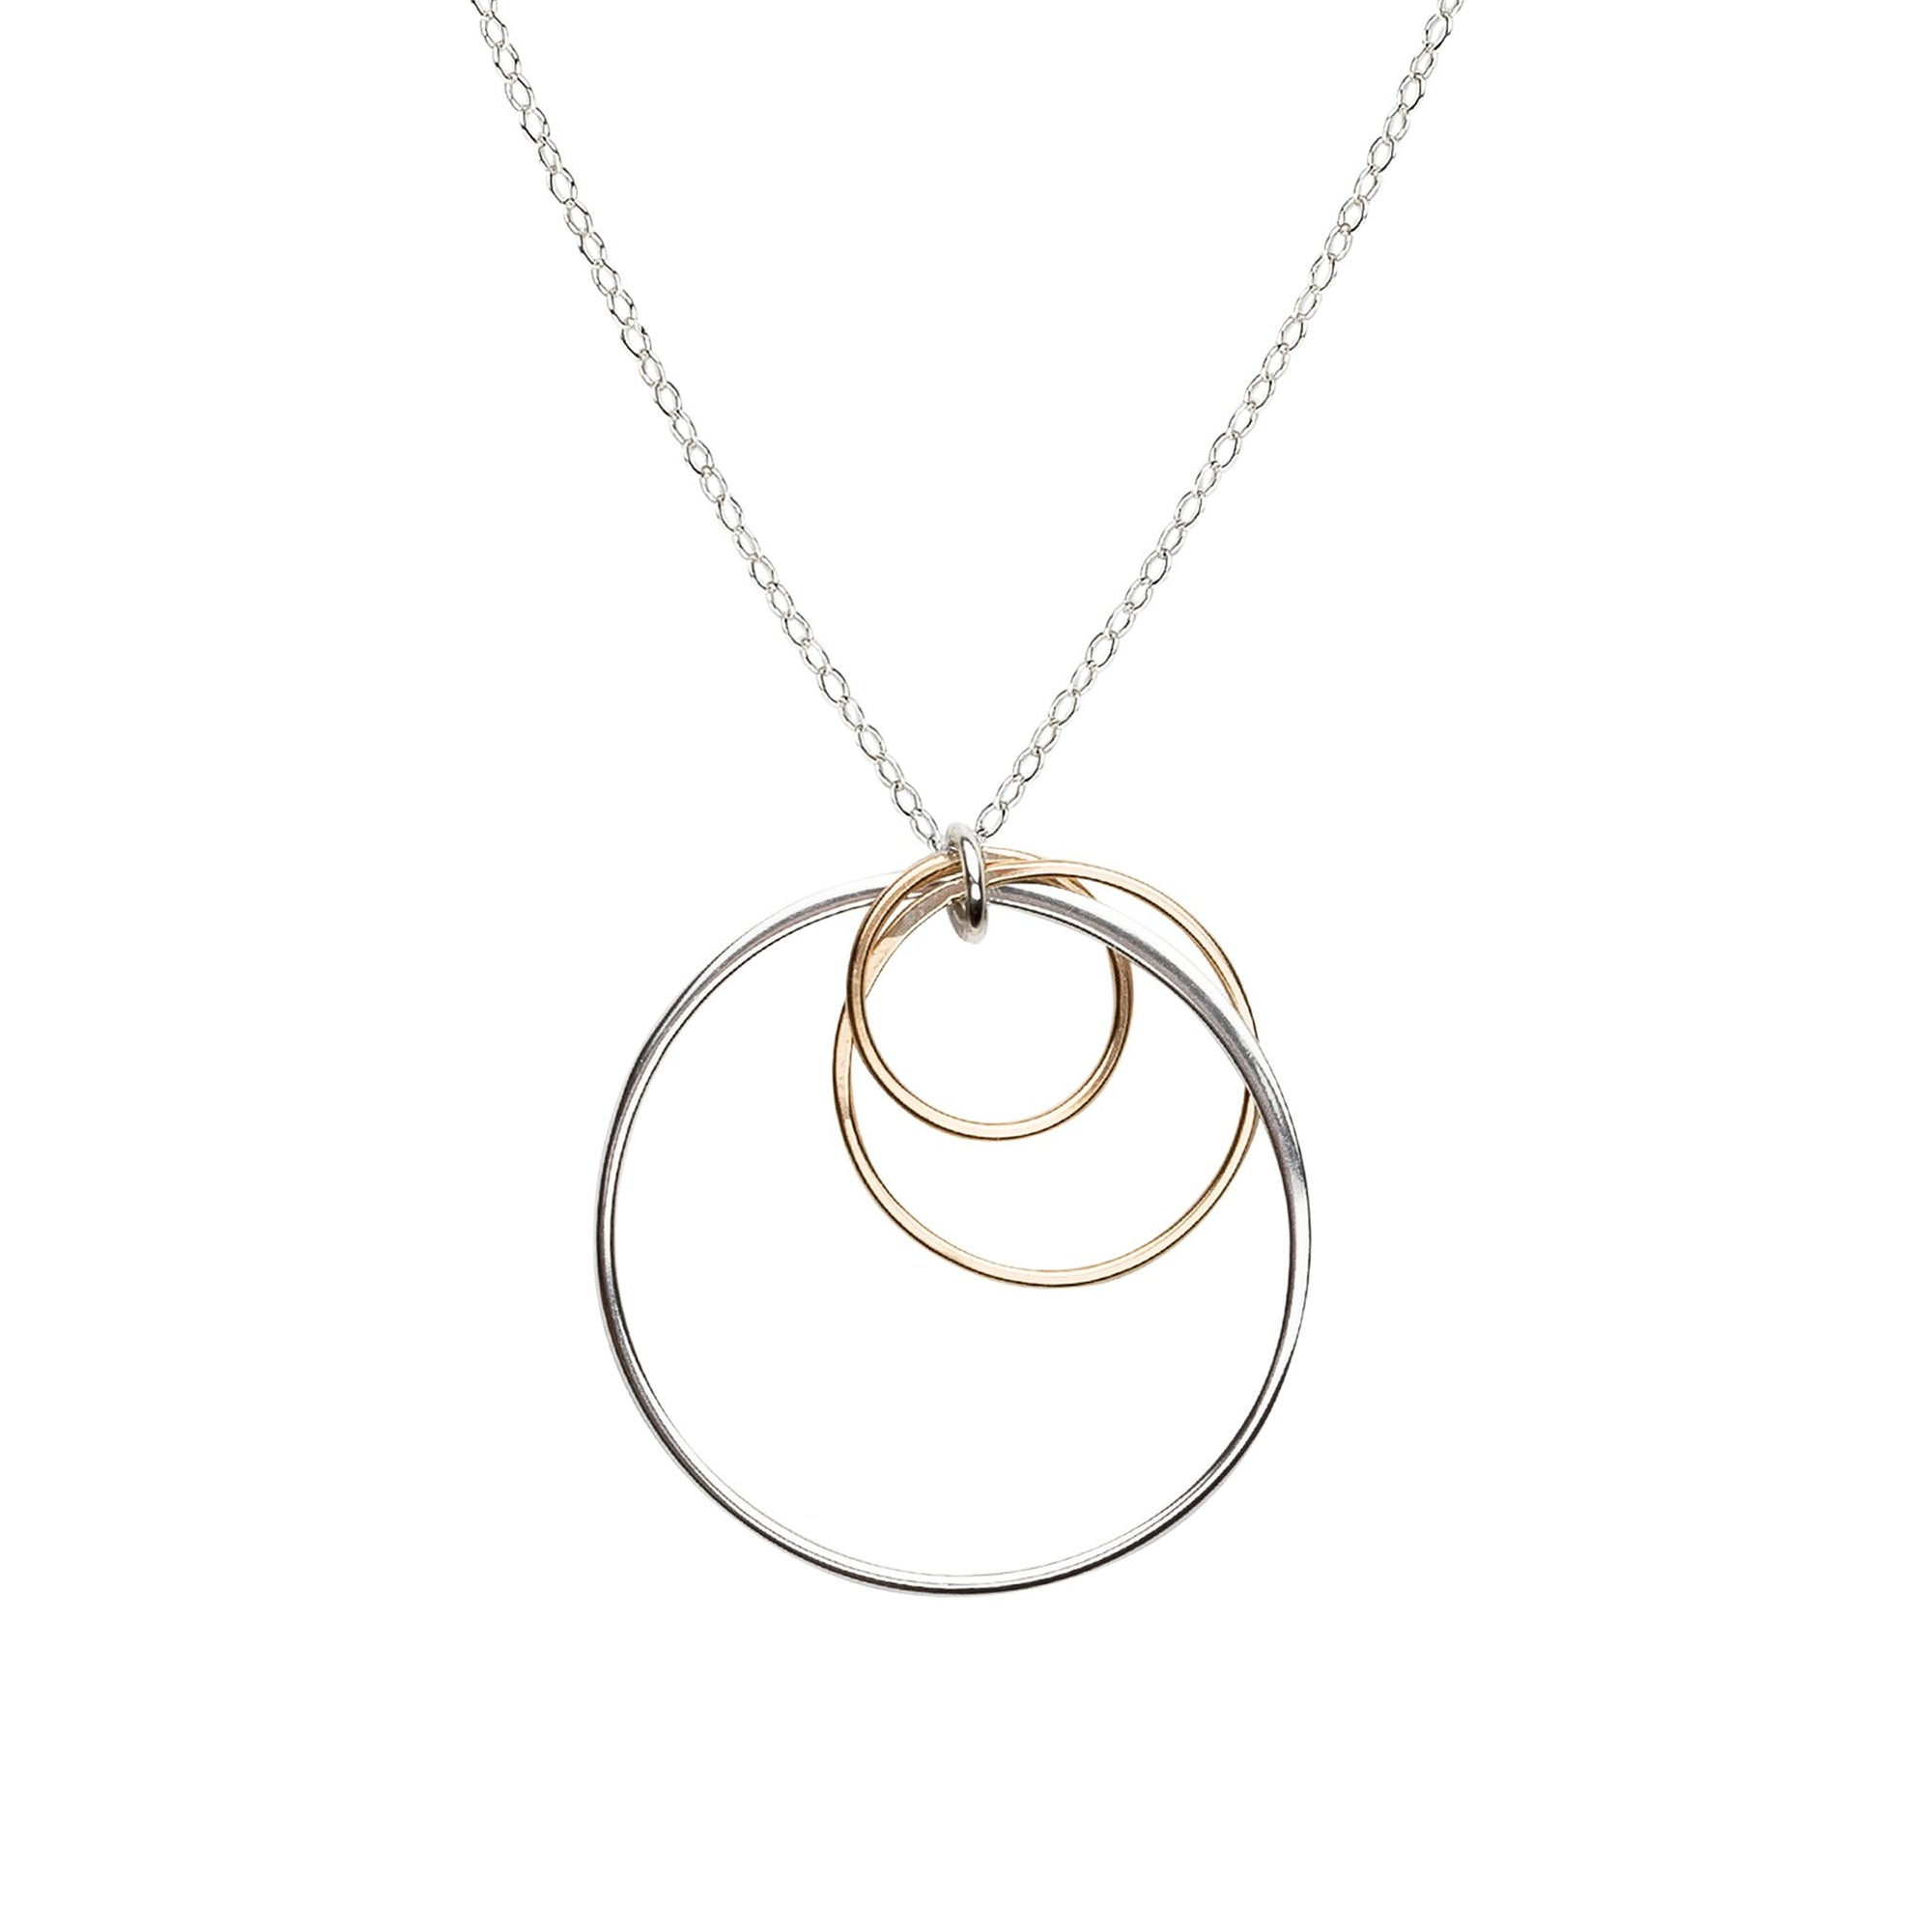 Cynthia Silver & Gold Dangle Cluster Circle Necklace